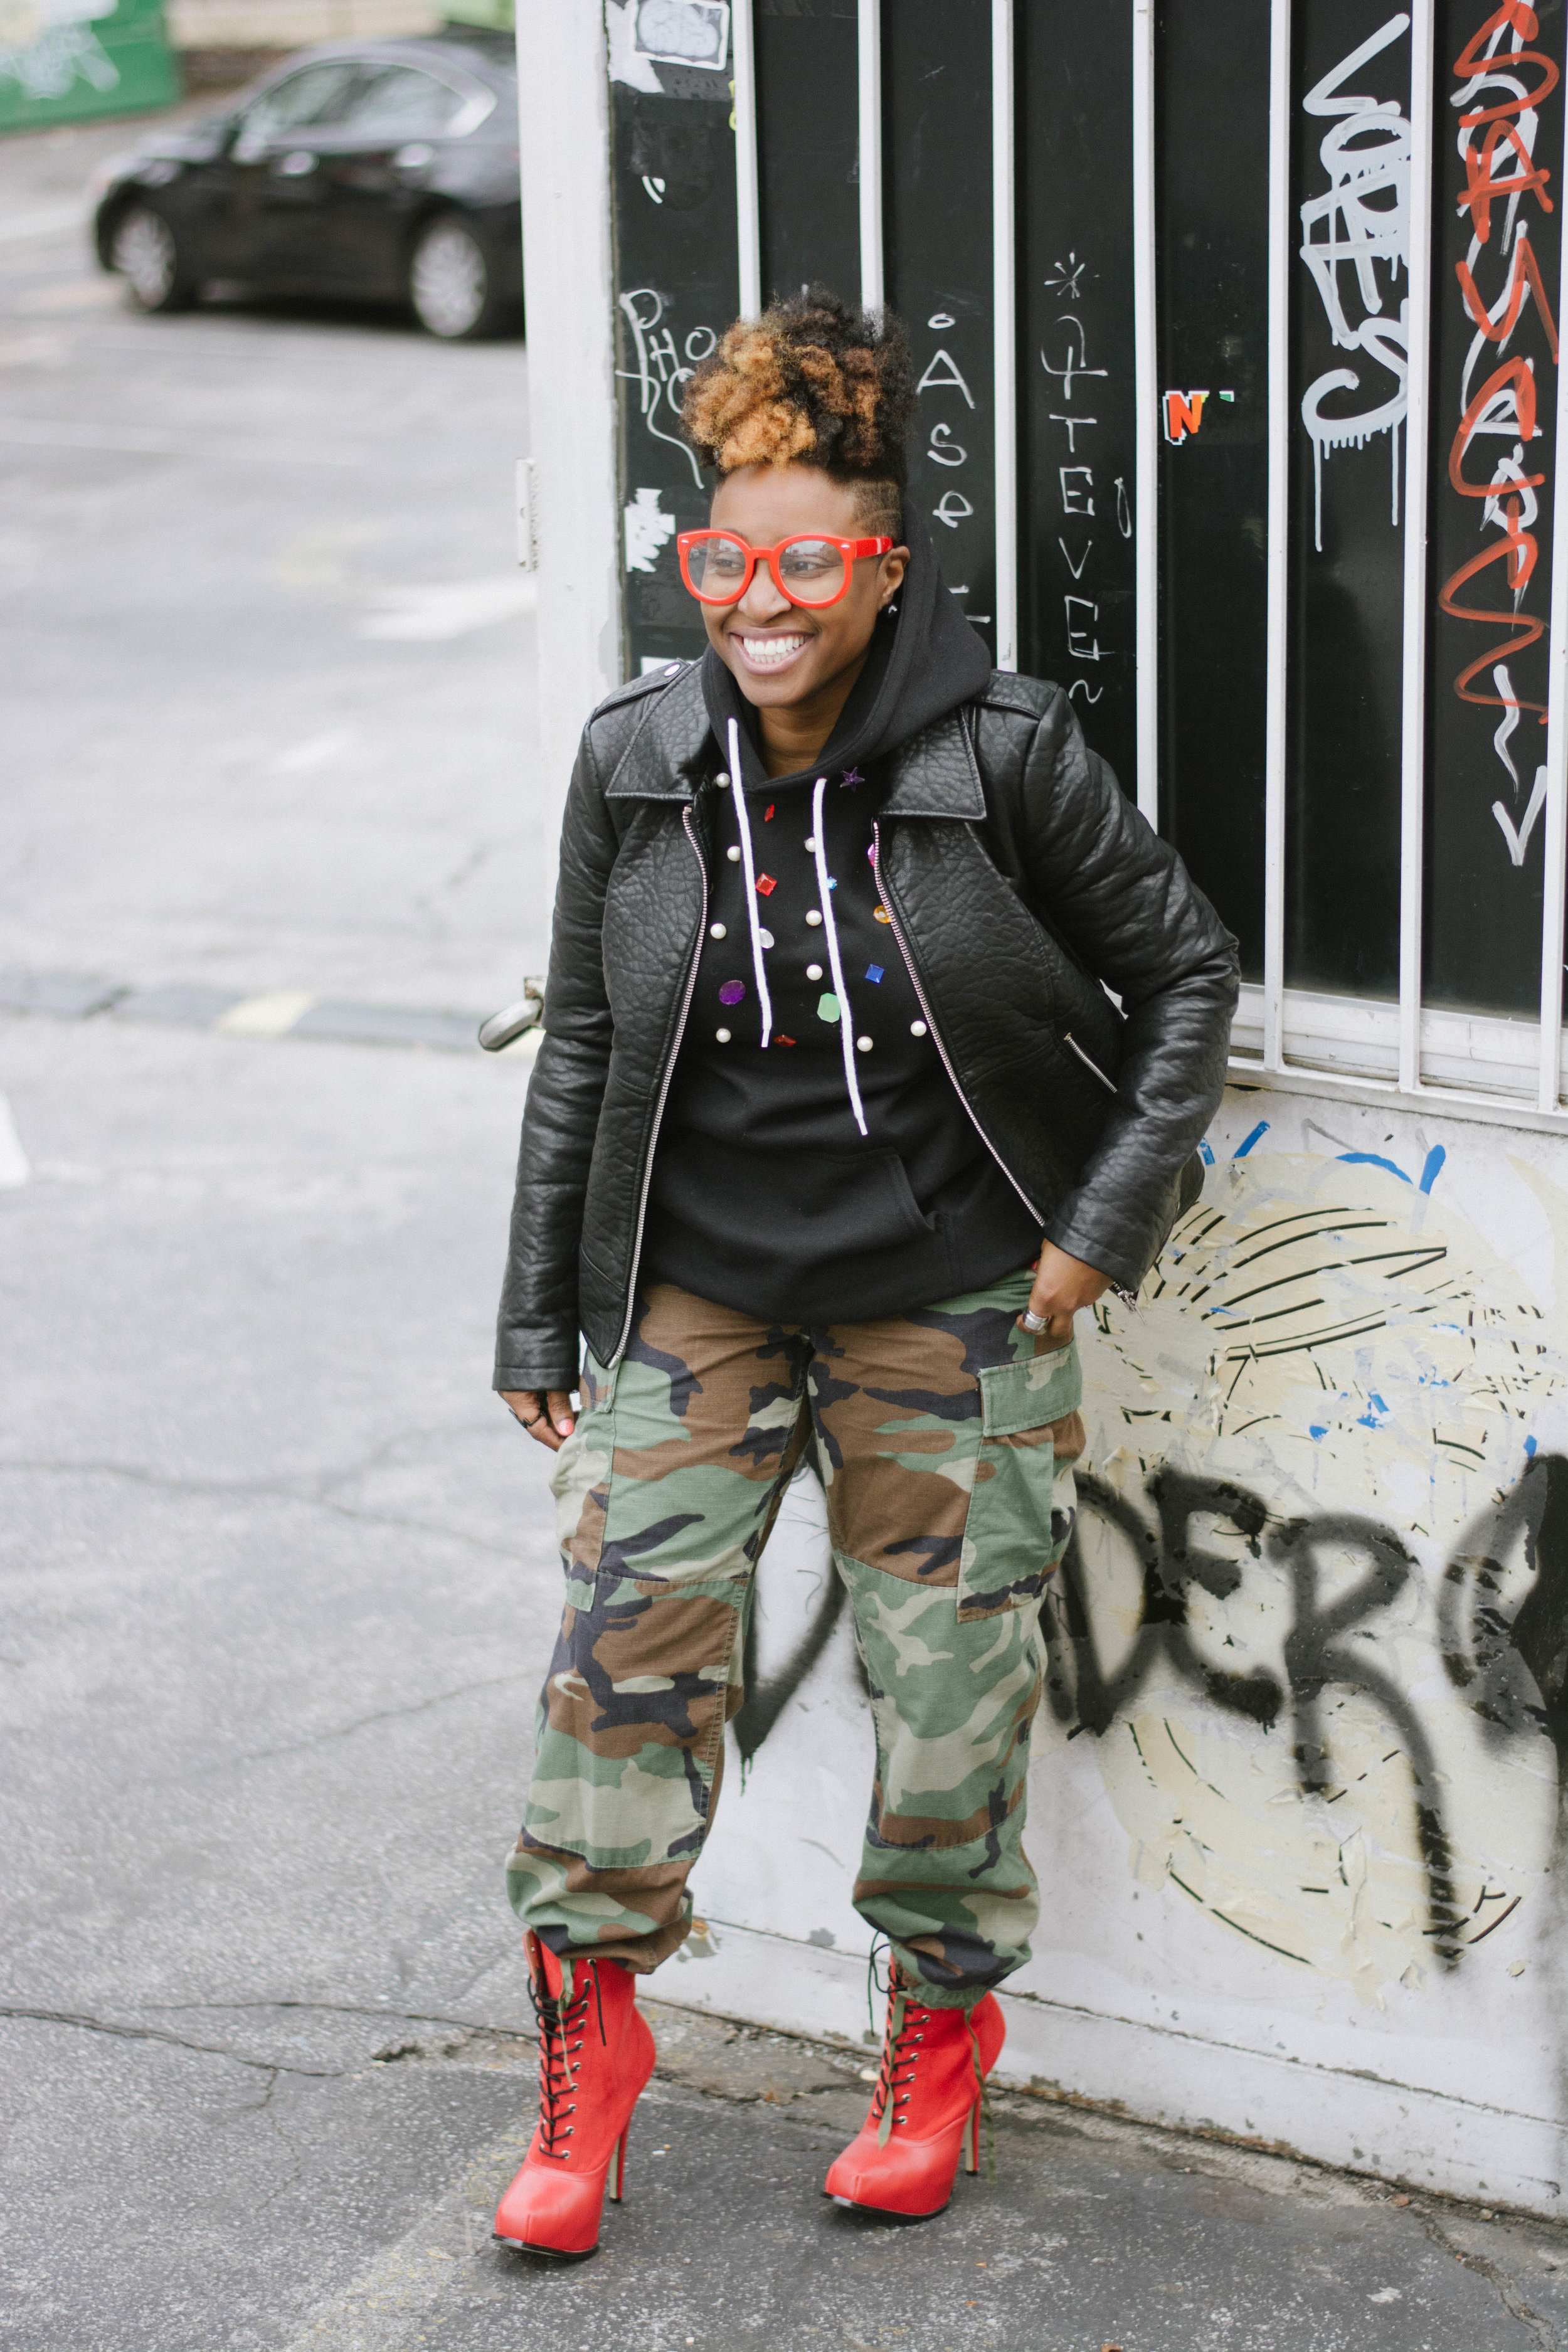 Melodie Stewart, The Style Klazit, Atlanta style blogger, Atlanta stylist, Atlanta street fashion